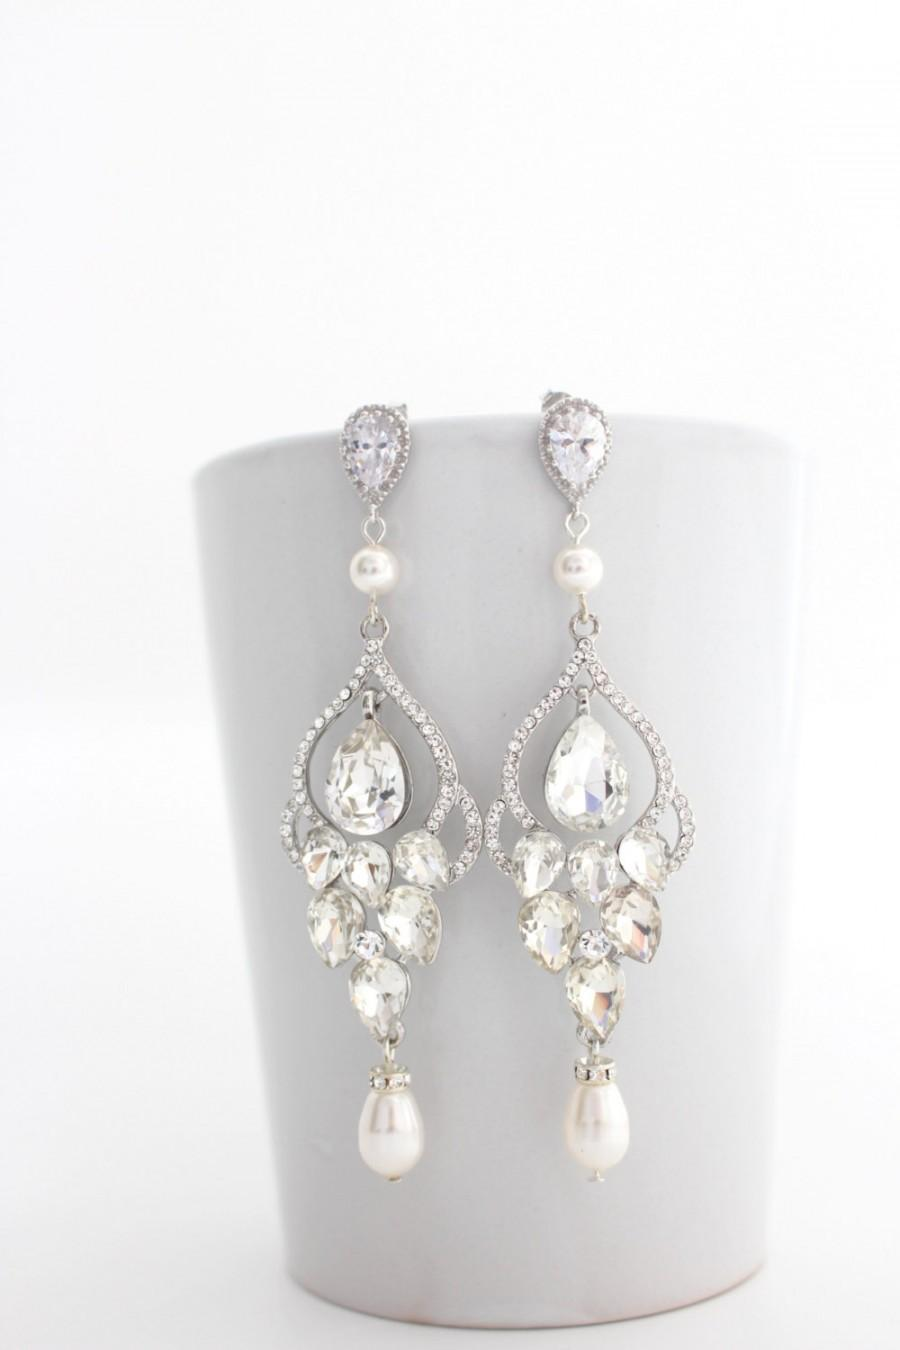 Long Bridal Chandelier Earrings Wedding Crystal And Pearl Vintage Style Jewelry Statement Post